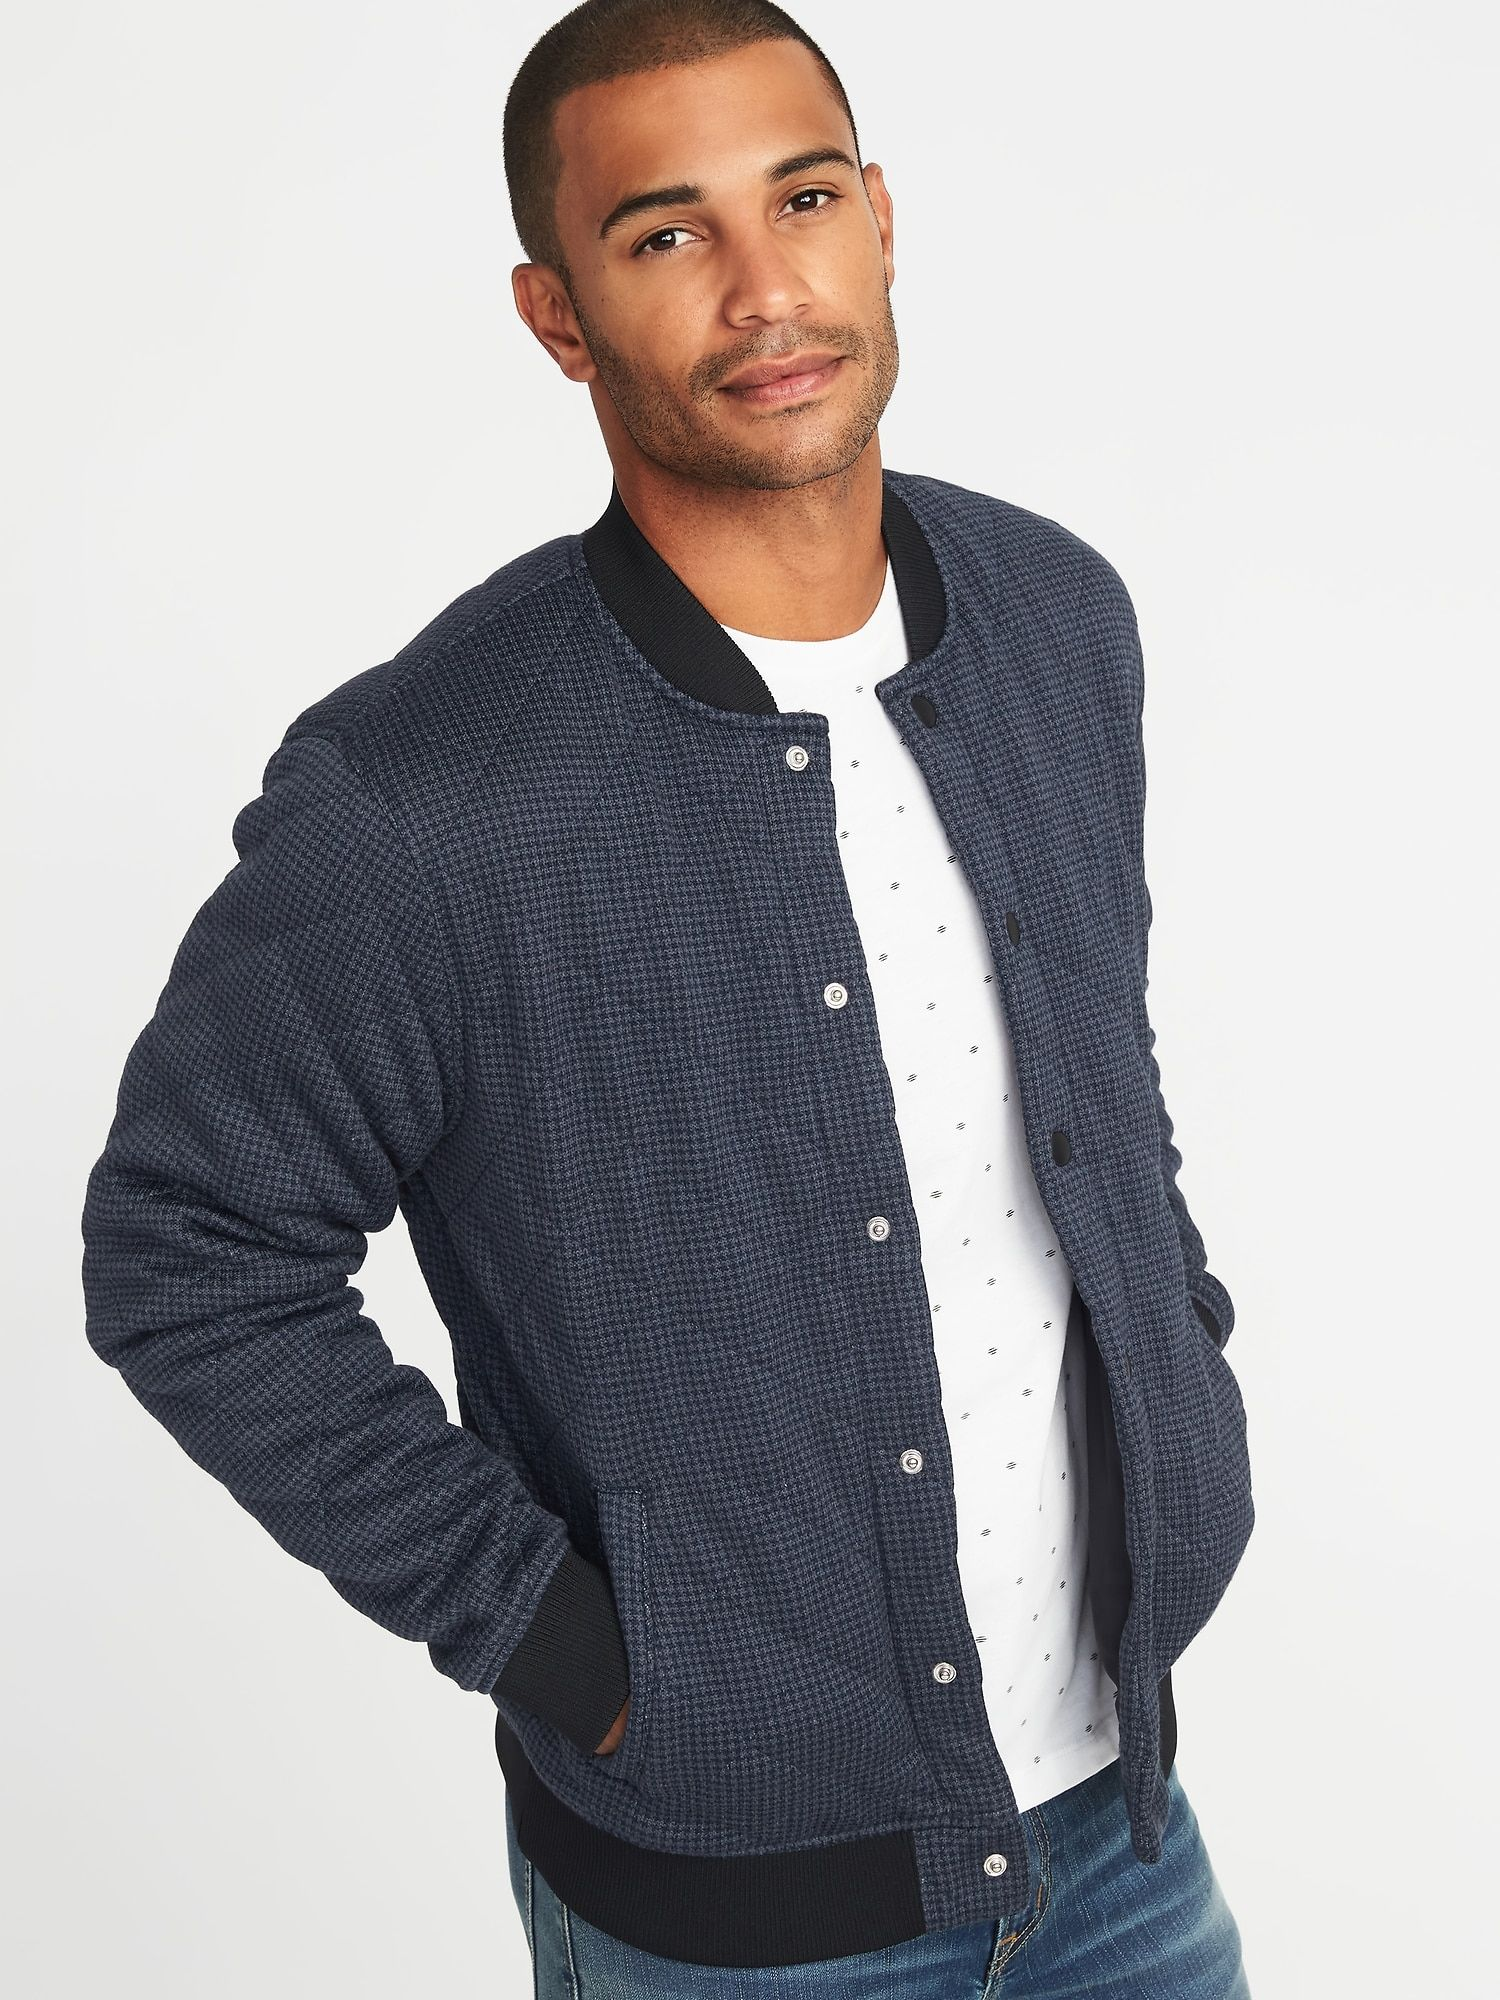 421c41ae506d5 Quilted Sweater-Fleece Bomber Jacket for Men